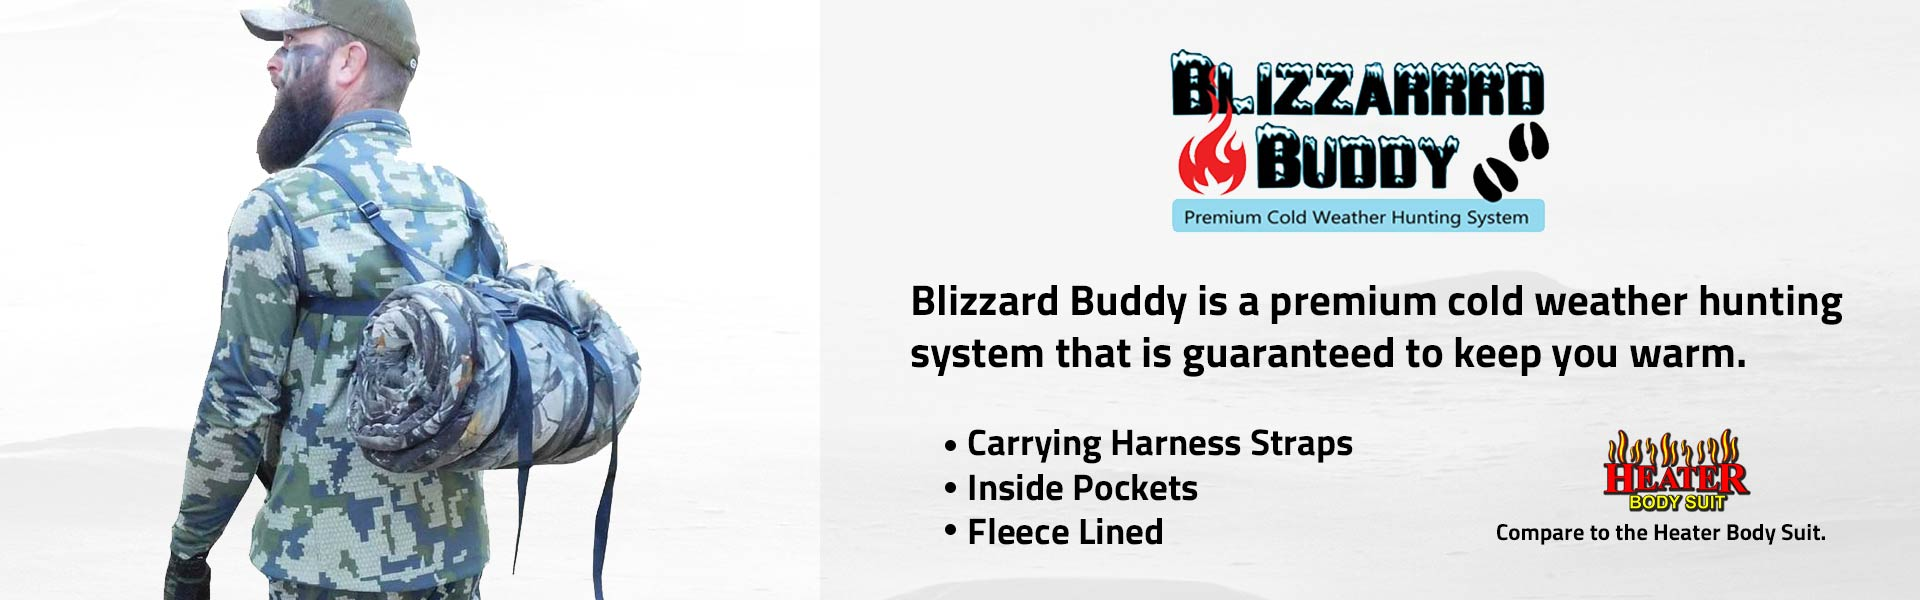 Blizzard Buddy